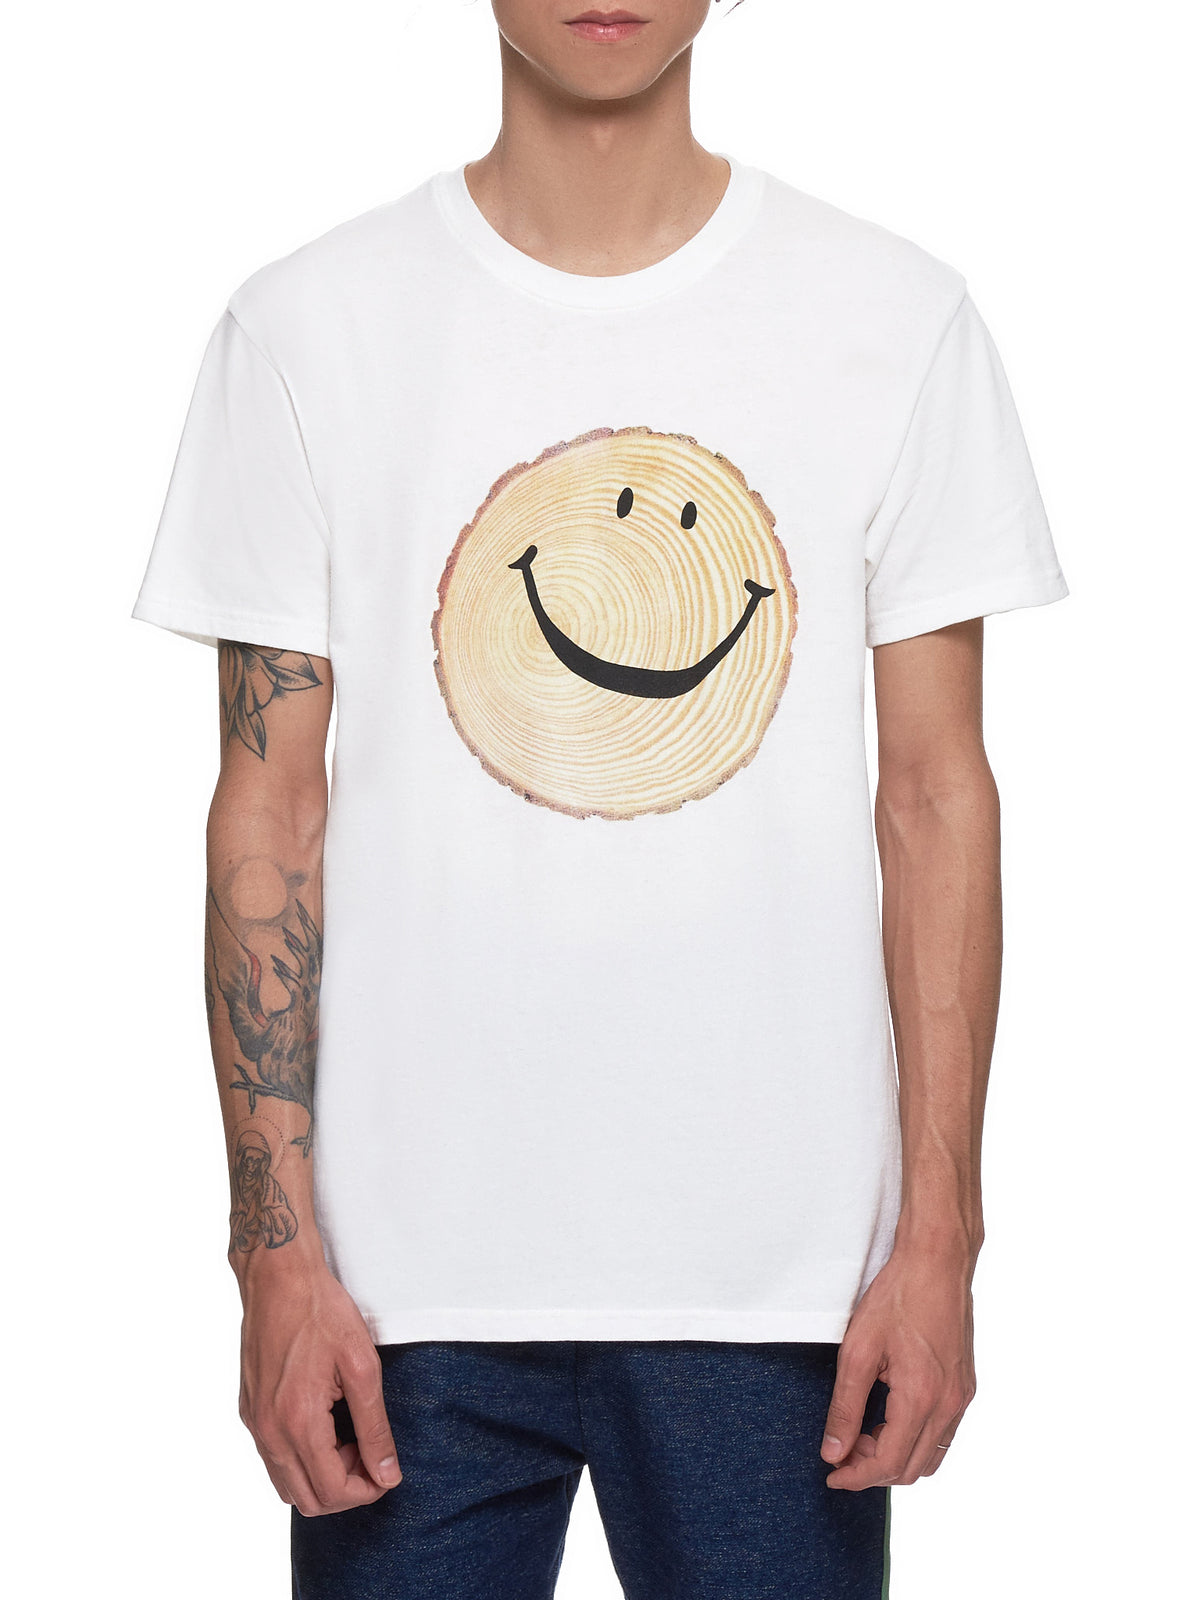 'Smile' T-Shirt (K1904SC112-WHITE)